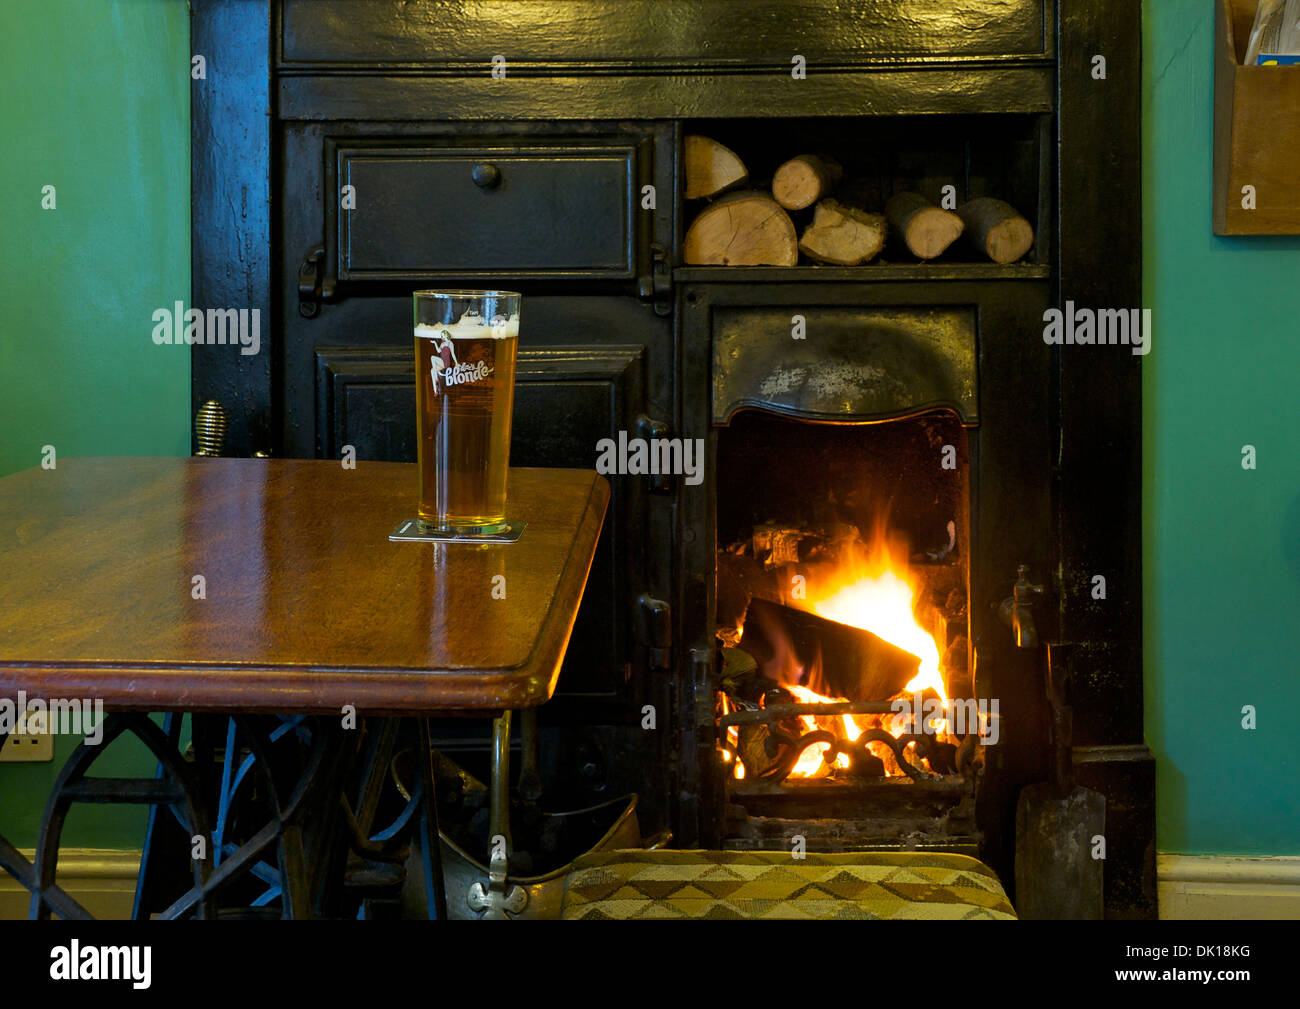 Pint of Dizzy Blonde beer in the Old Friends pub, Soutergate, Ulverston, Cumbria, England UK - Stock Image